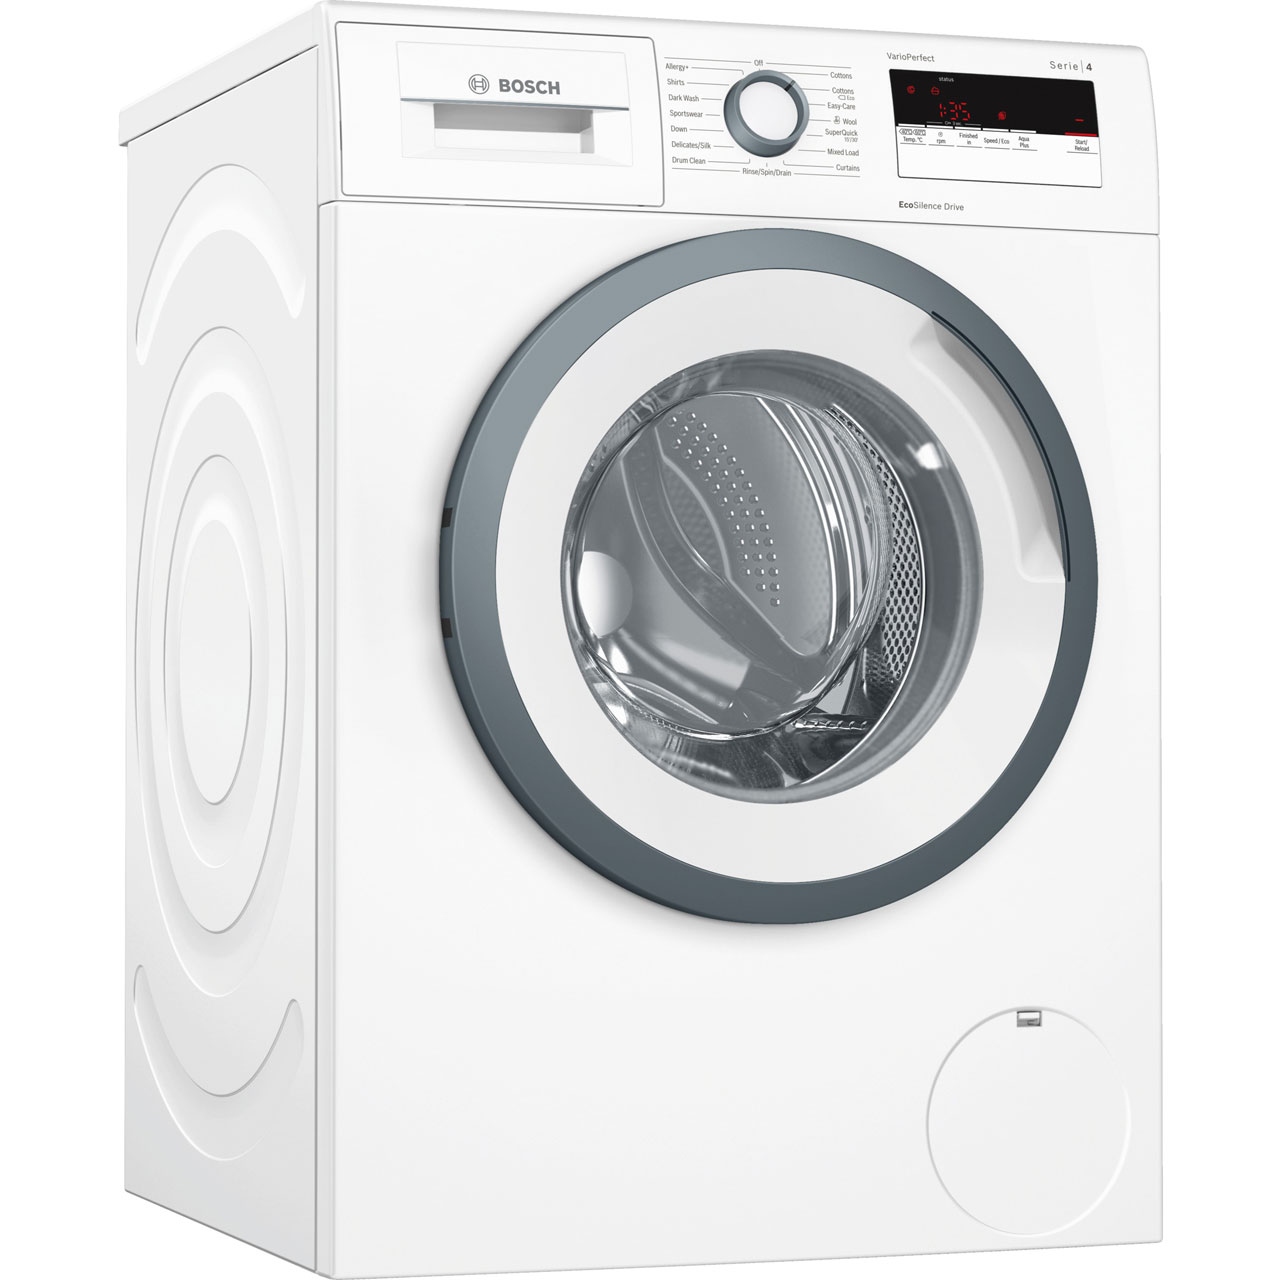 bosch serie 4 wan28150gb washing machine appliance spotter. Black Bedroom Furniture Sets. Home Design Ideas